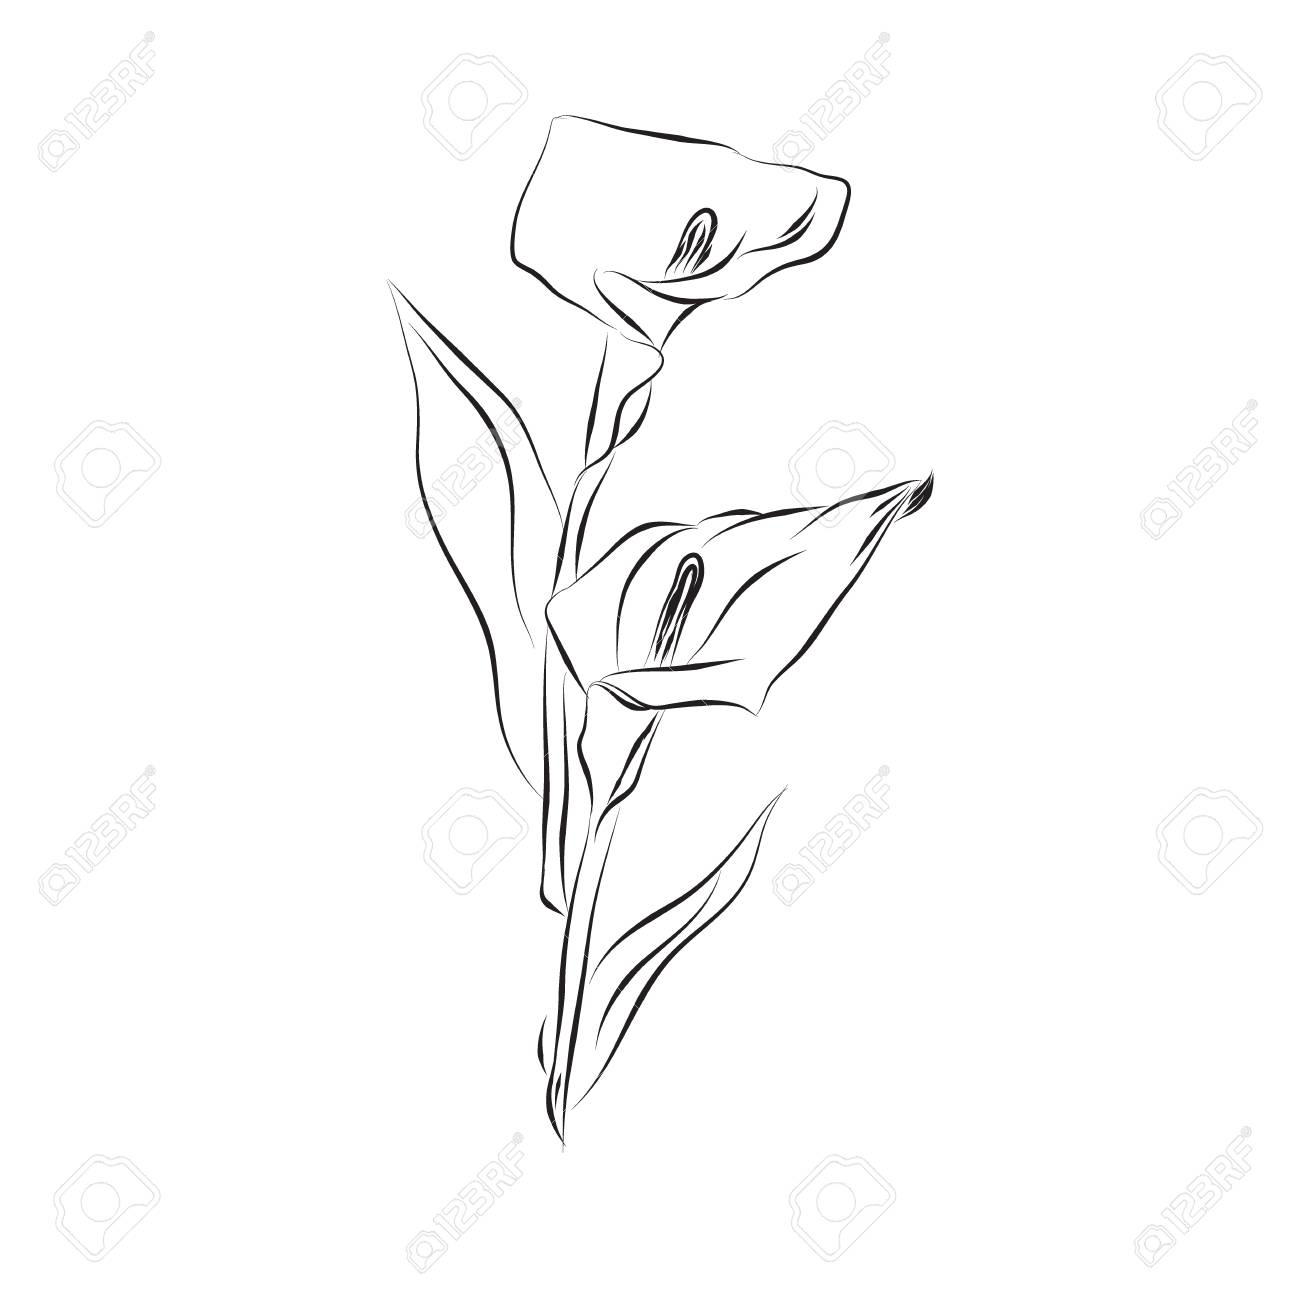 Lily Flower Sketch Design Vector Illustration Royalty Free Cliparts Vectors And Stock Illustration Image 58876108